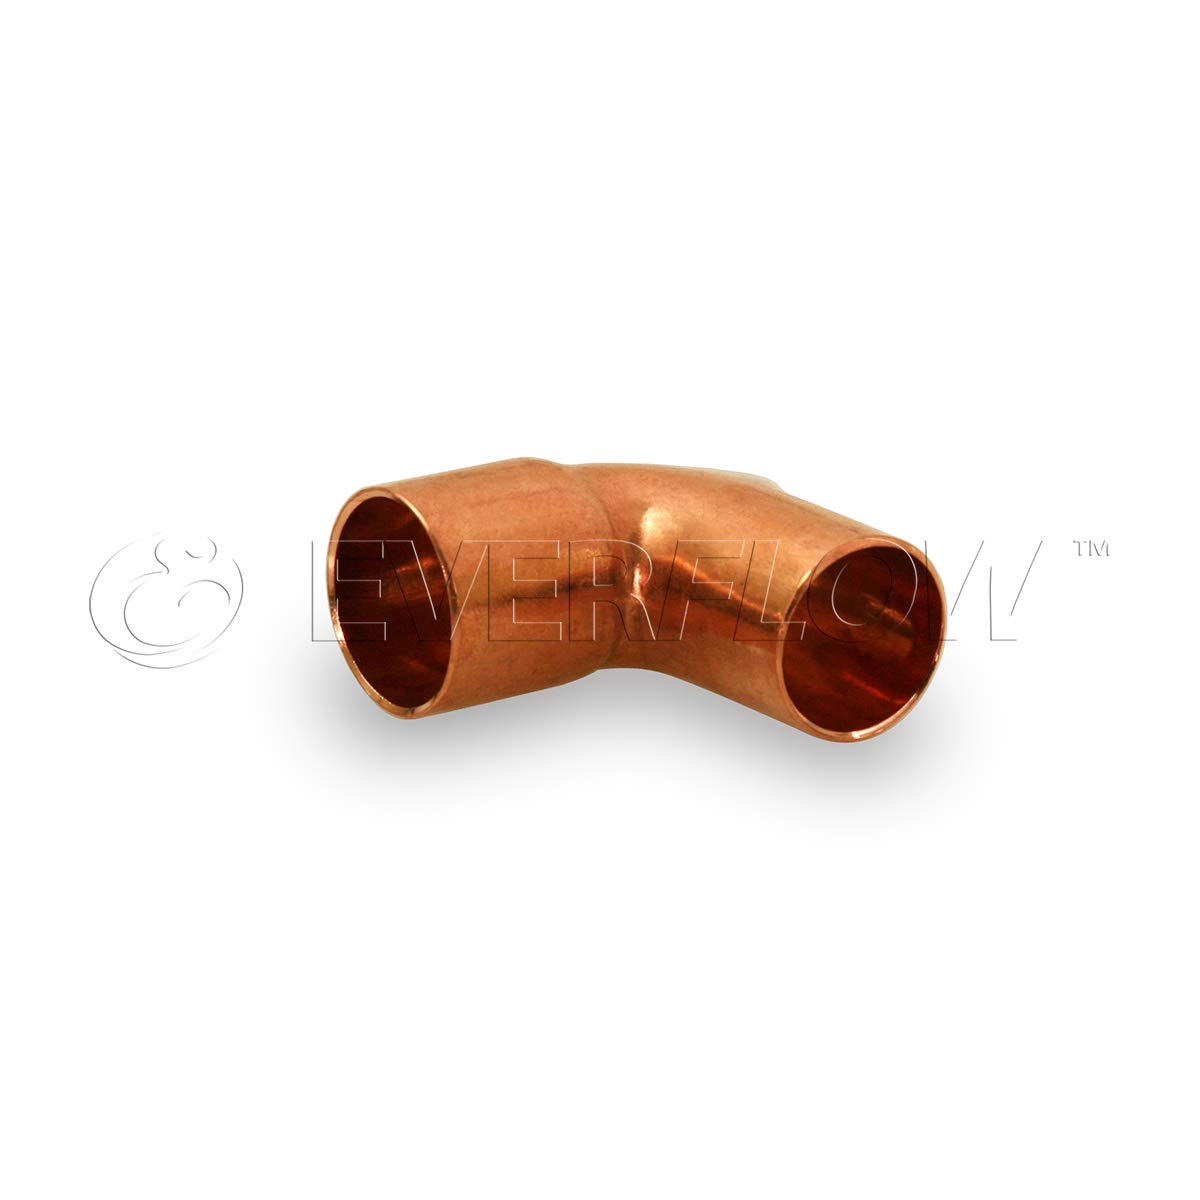 Everflow Supplies CCSN0014 1//4 Nominal Size 90 Degree Short Radius Street Elbow with a Male and a Female Sweat Connect for 3//8 Outer Diameter Copper Pipe